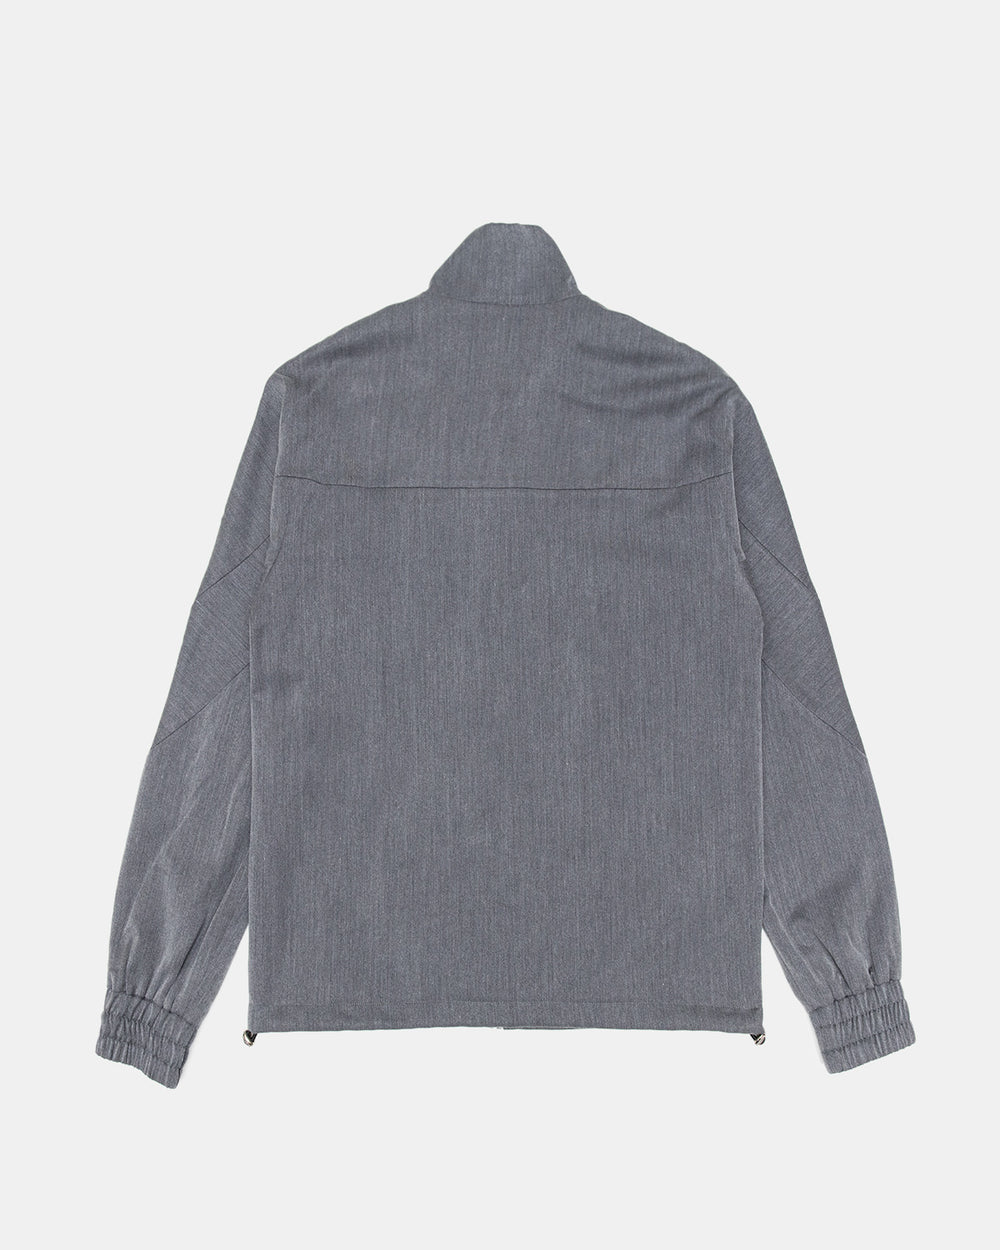 Opening Ceremony - Tailoring Warm-Up Jacket (Charcoal Grey)